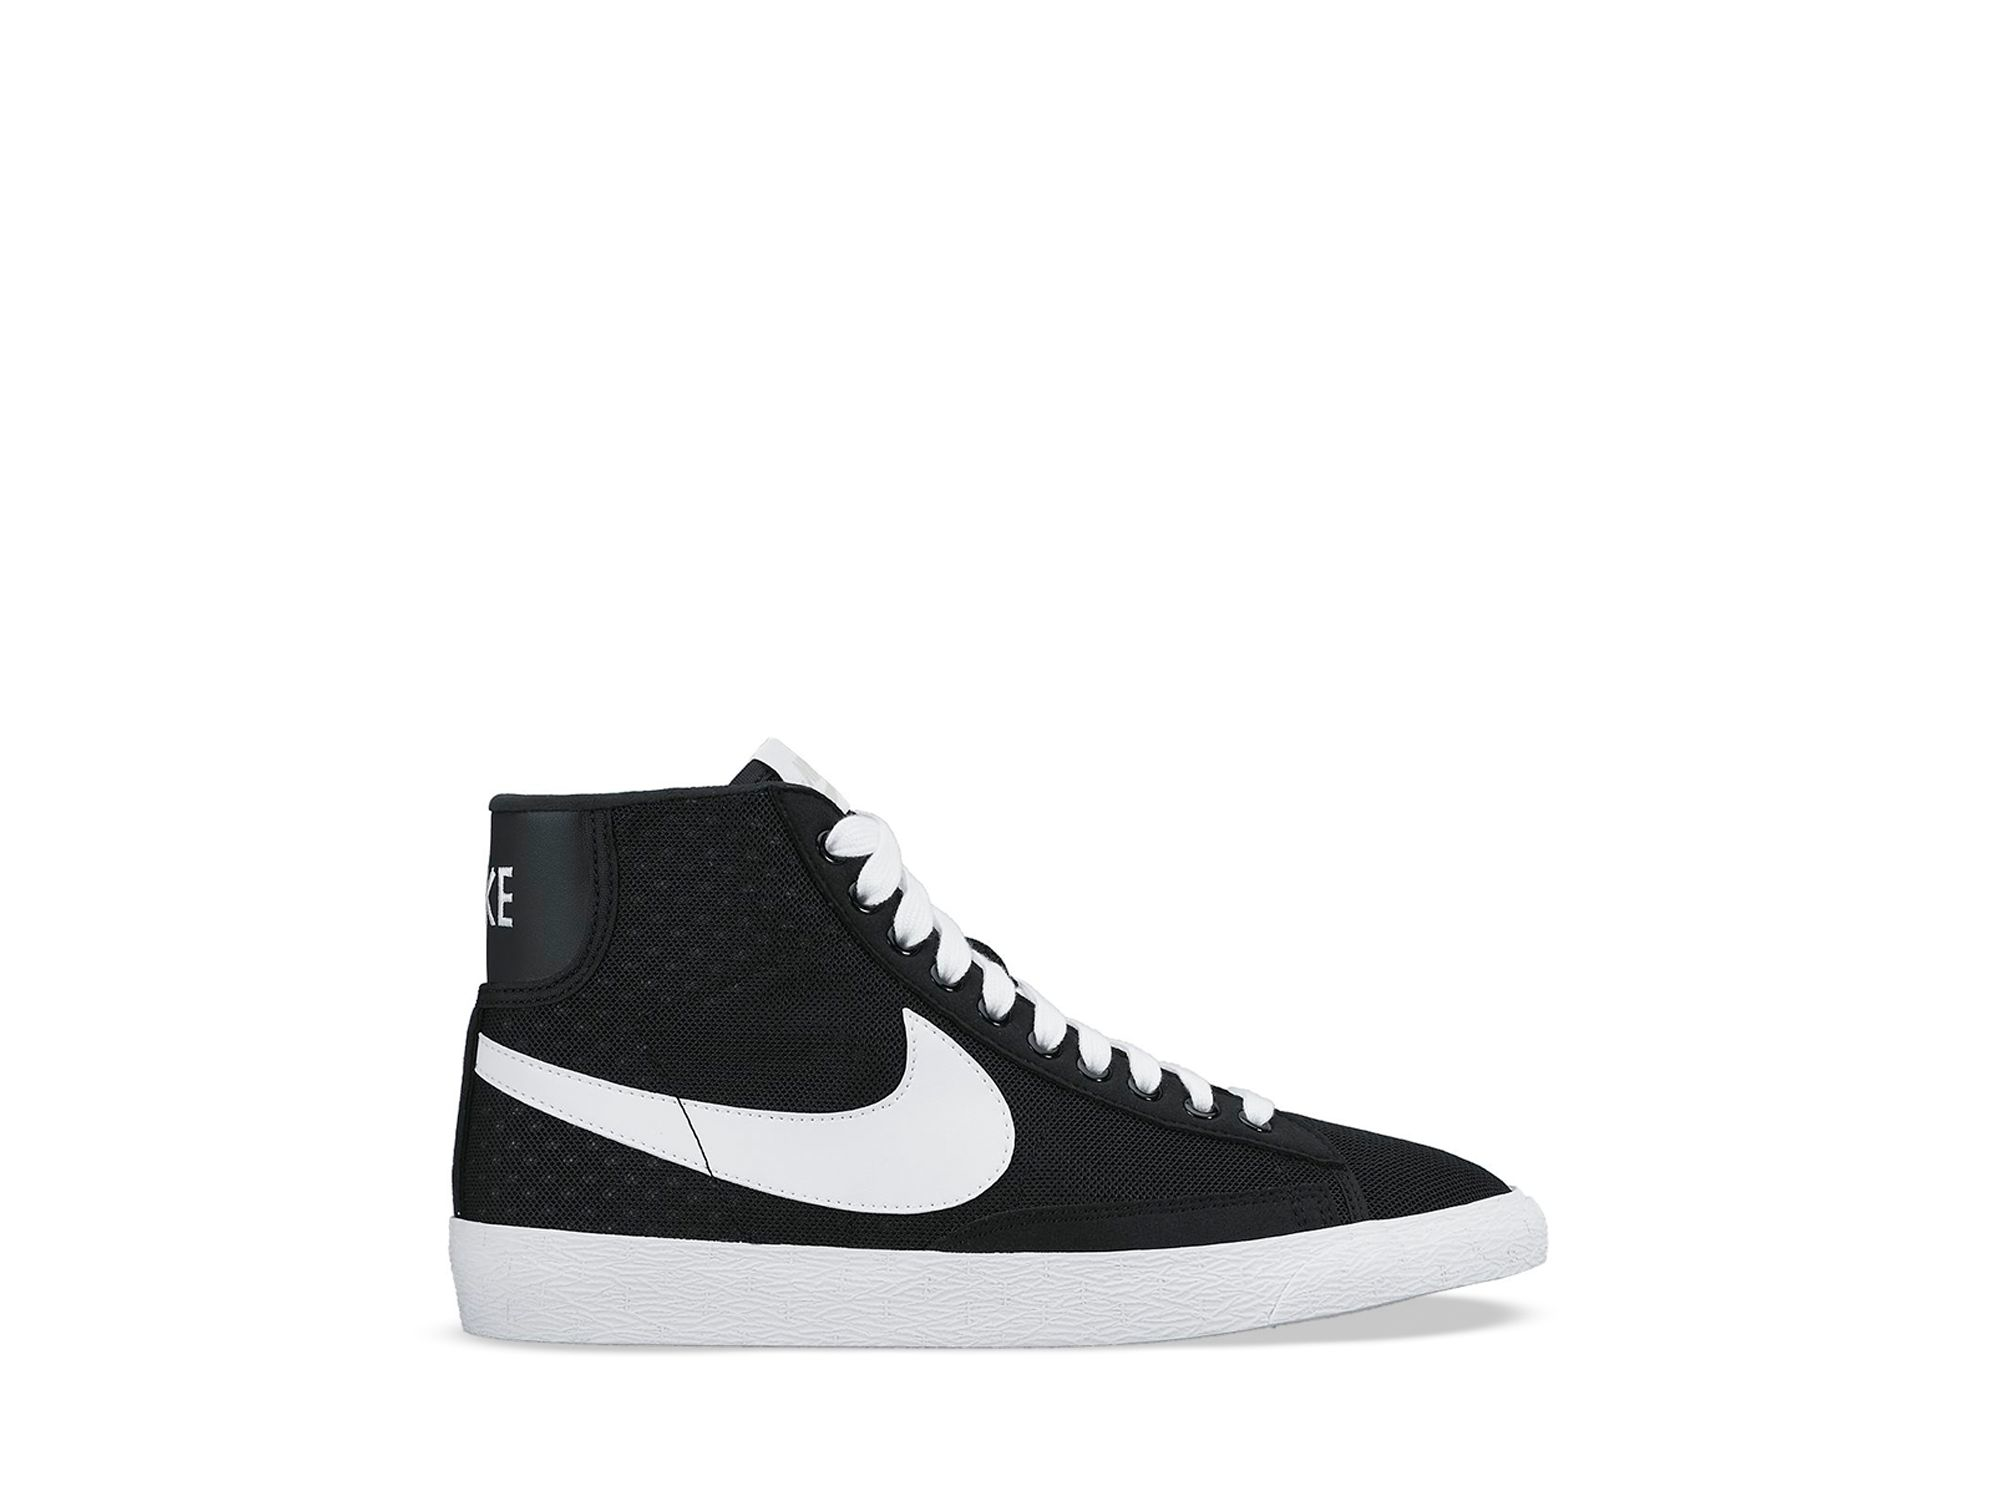 92cdaefaaedd ... official lyst nike lace up high top sneakers womens blazer mid mesh in  black 8b351 53385